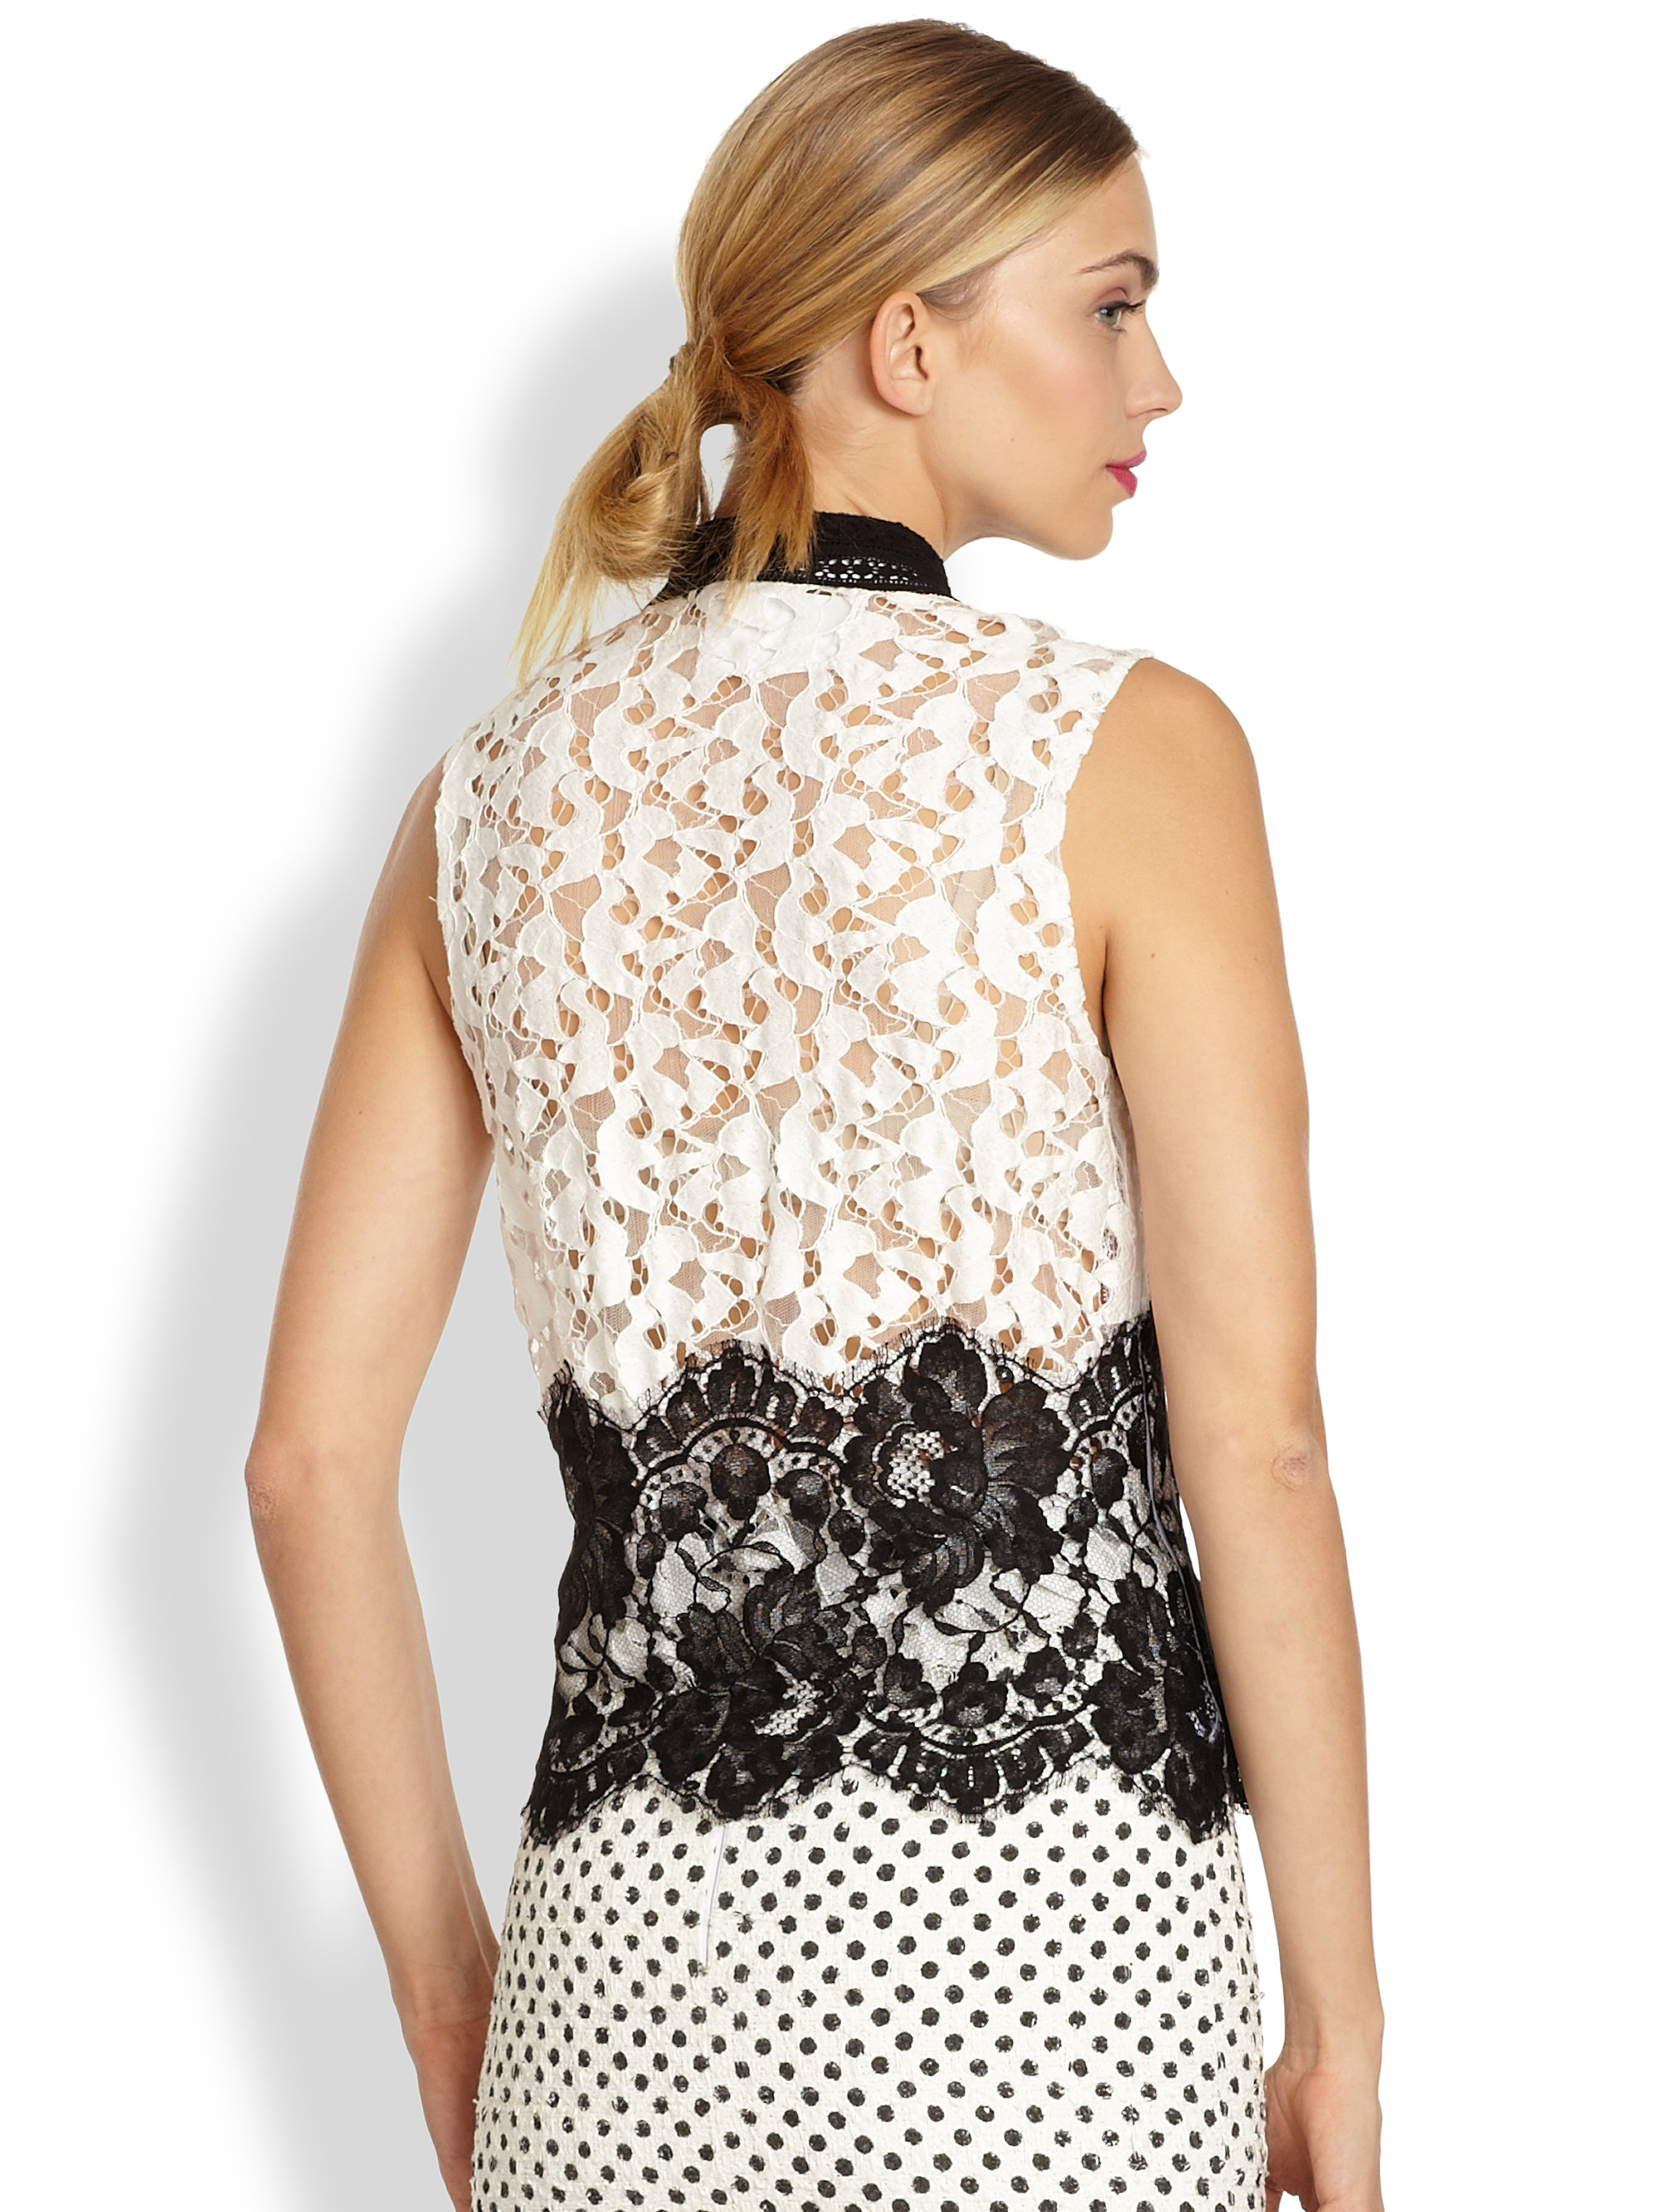 Oscar de la Renta sleeveless top Stockist Online Outlet Store For Sale PQcpNjhj8